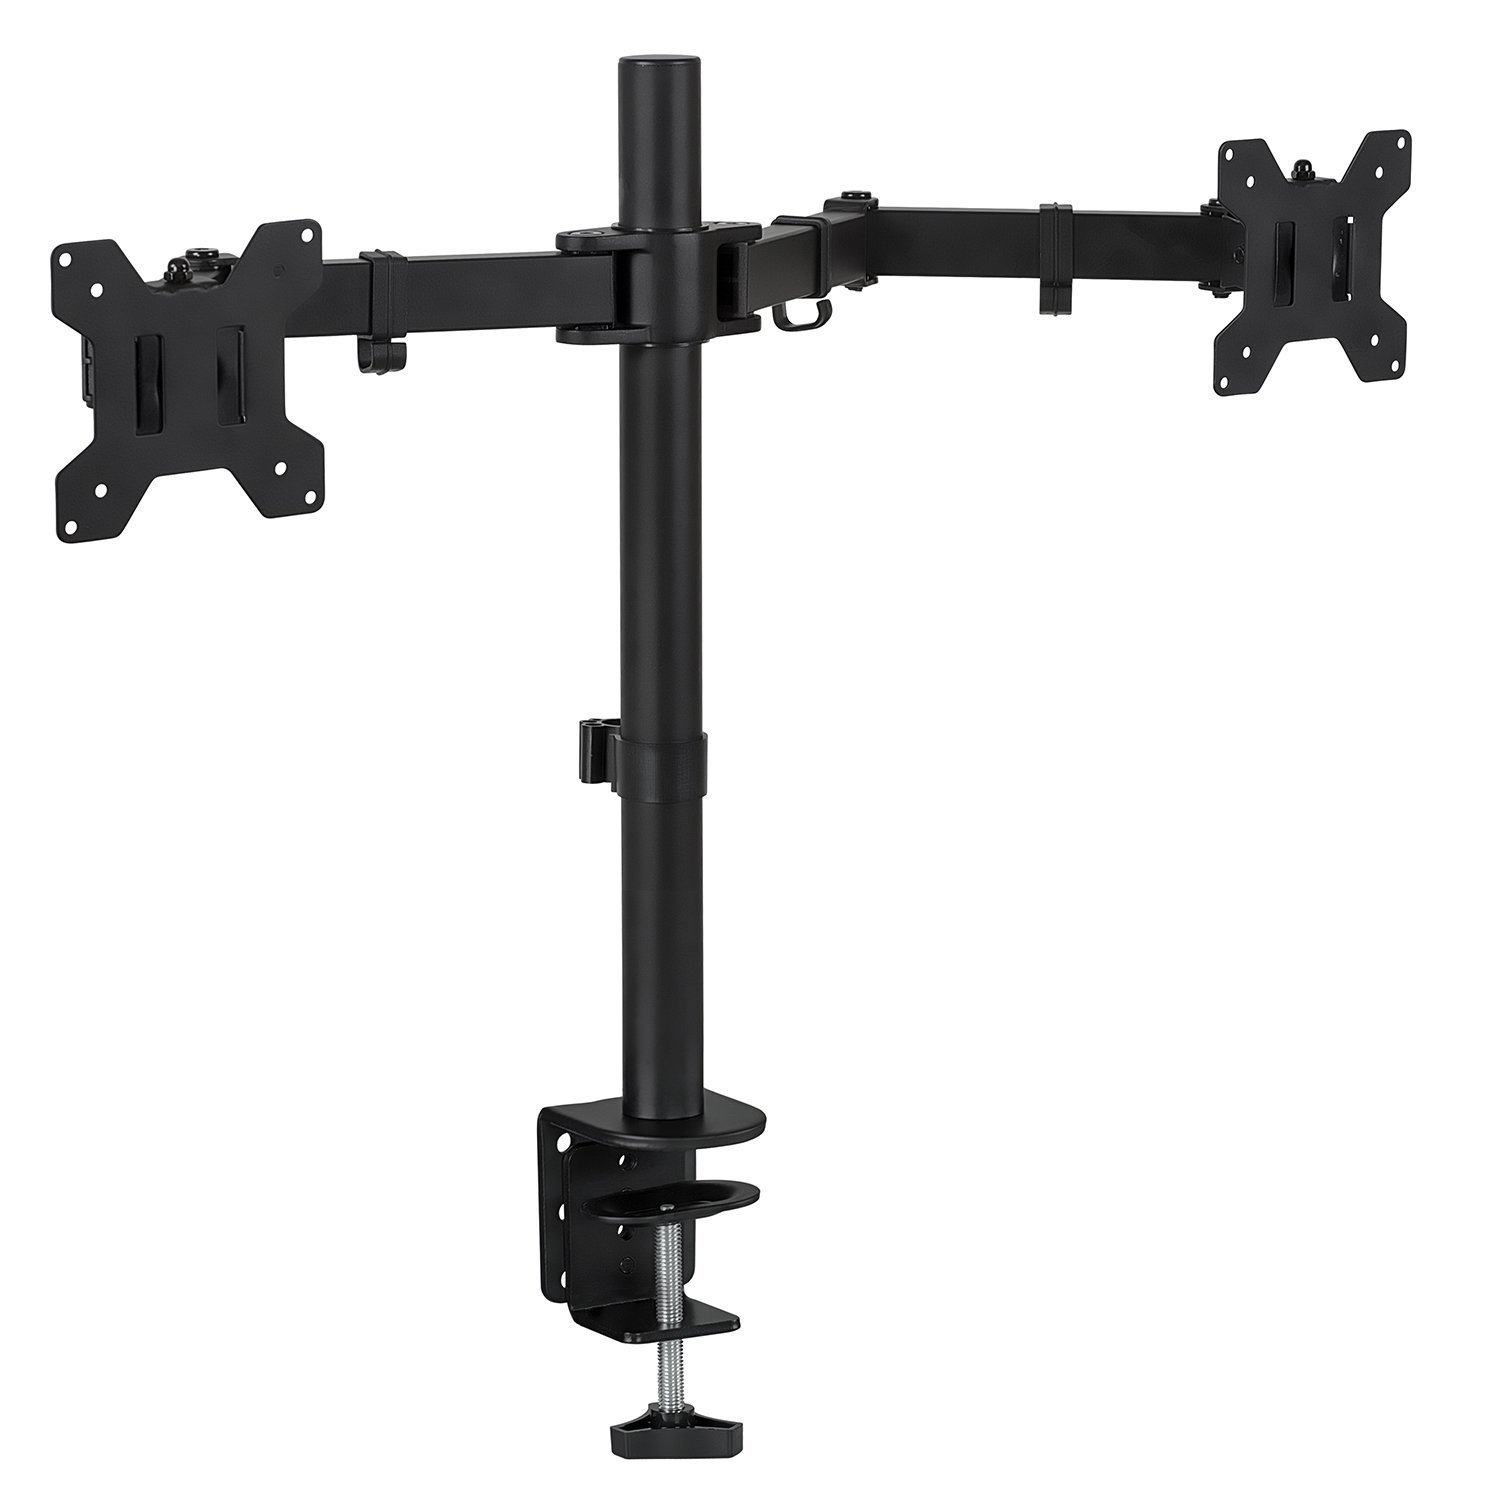 Mount-It Mount Desk Stand for LCD LED Computer Displays Two Articulating Arms Clamp Desk Installation Fits up to 27 Inch Screens Heavy-Duty VESA 75 and 100, BLACK, Dual Monitor